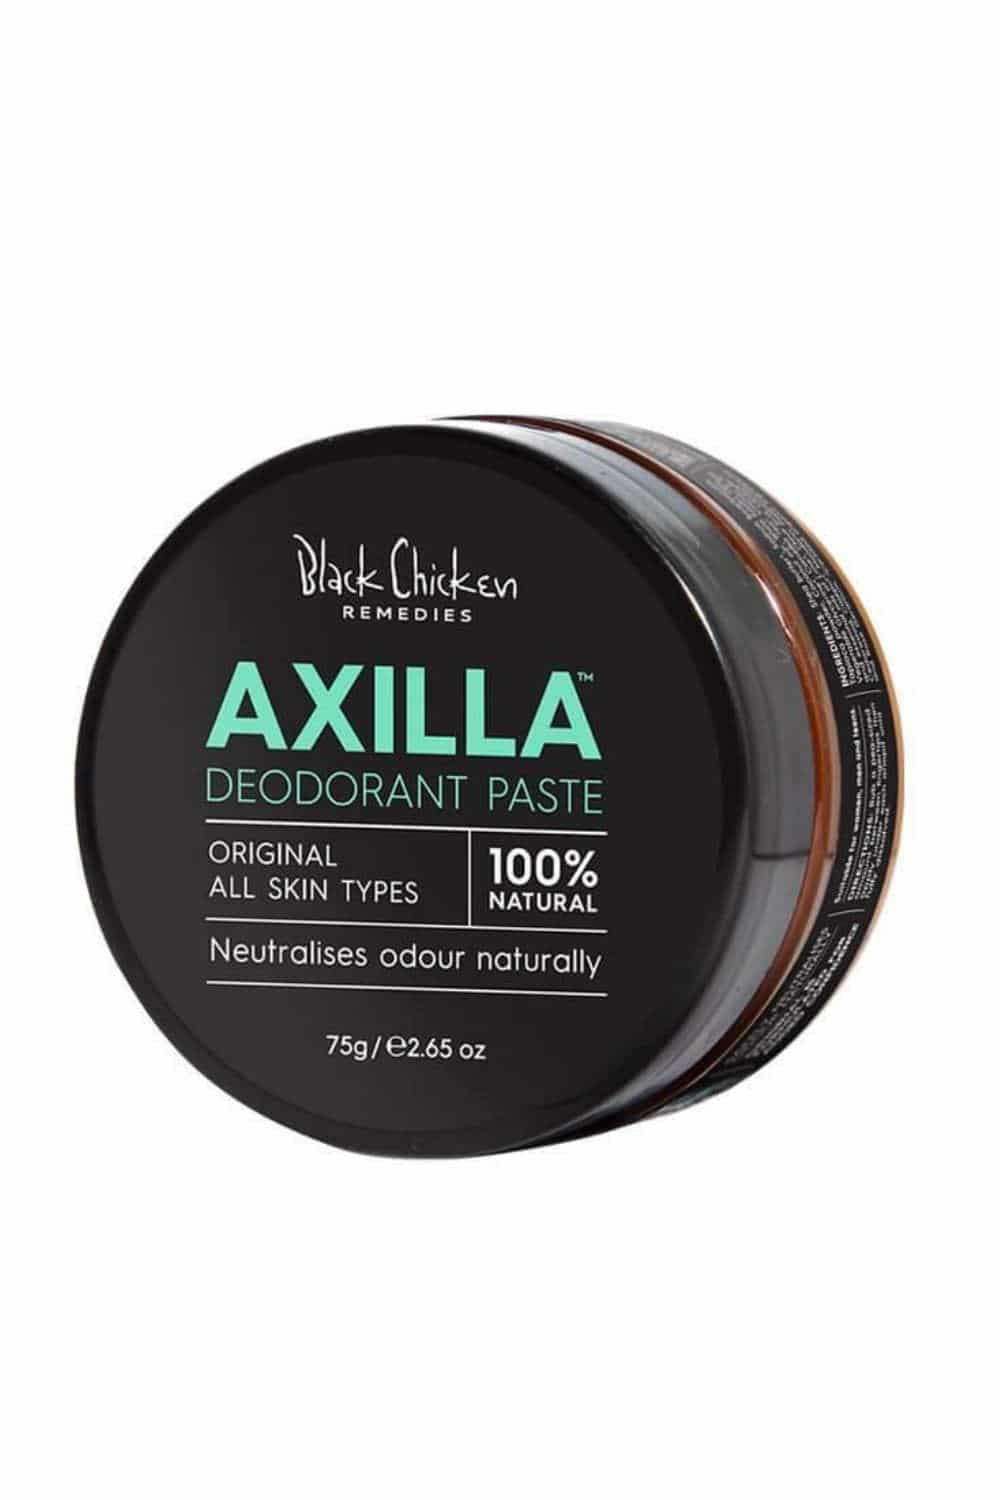 The ethical personal care market has exploded with options in the last few years which is great. The problem though, is trying to find eco friendly deodorants that are effective. So, we've made a list of our favorites that are fit for purpose! Image by Axilla Deodorant Paste #ecofriendlydeodorant #sustainablejungle